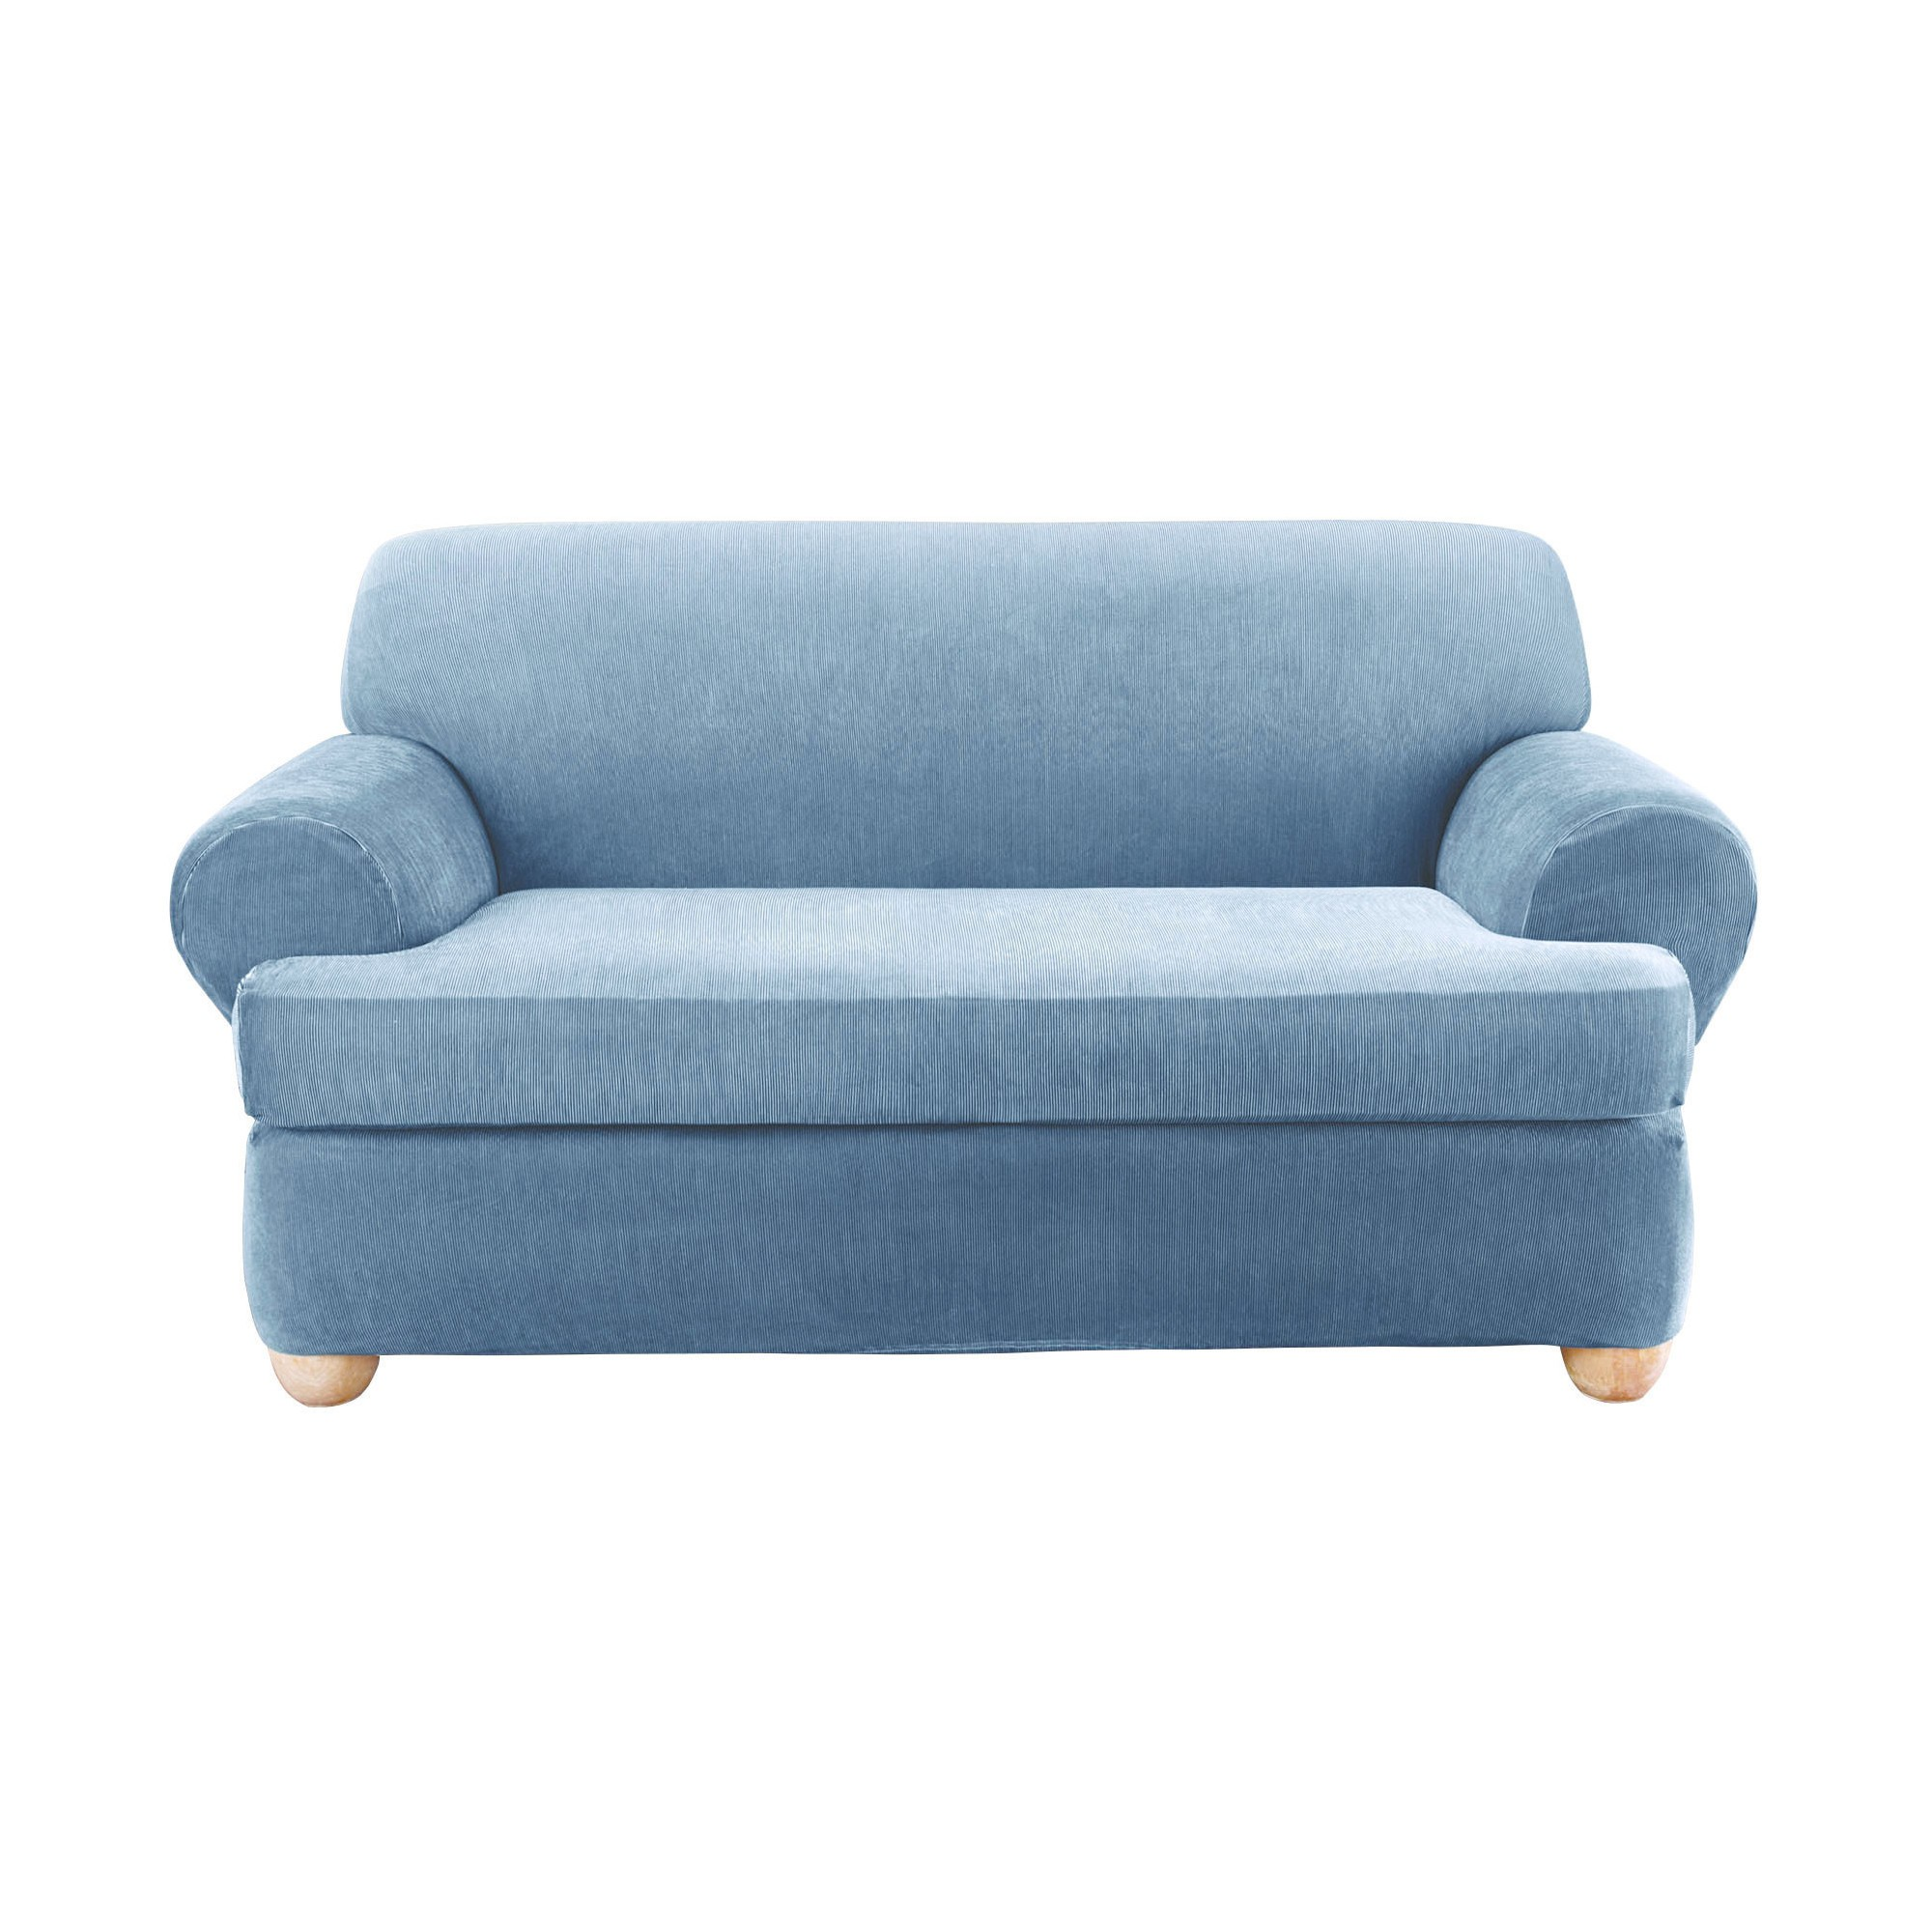 settee amazing purple recliner t of cushion slipcovered back loves beyond arm store chesterfield couch outdoor bath sofa piece large size sofas furniture duck long loveseat custom stretch macys covers two blue armchair and slipcover navy extra chair slipcovers in